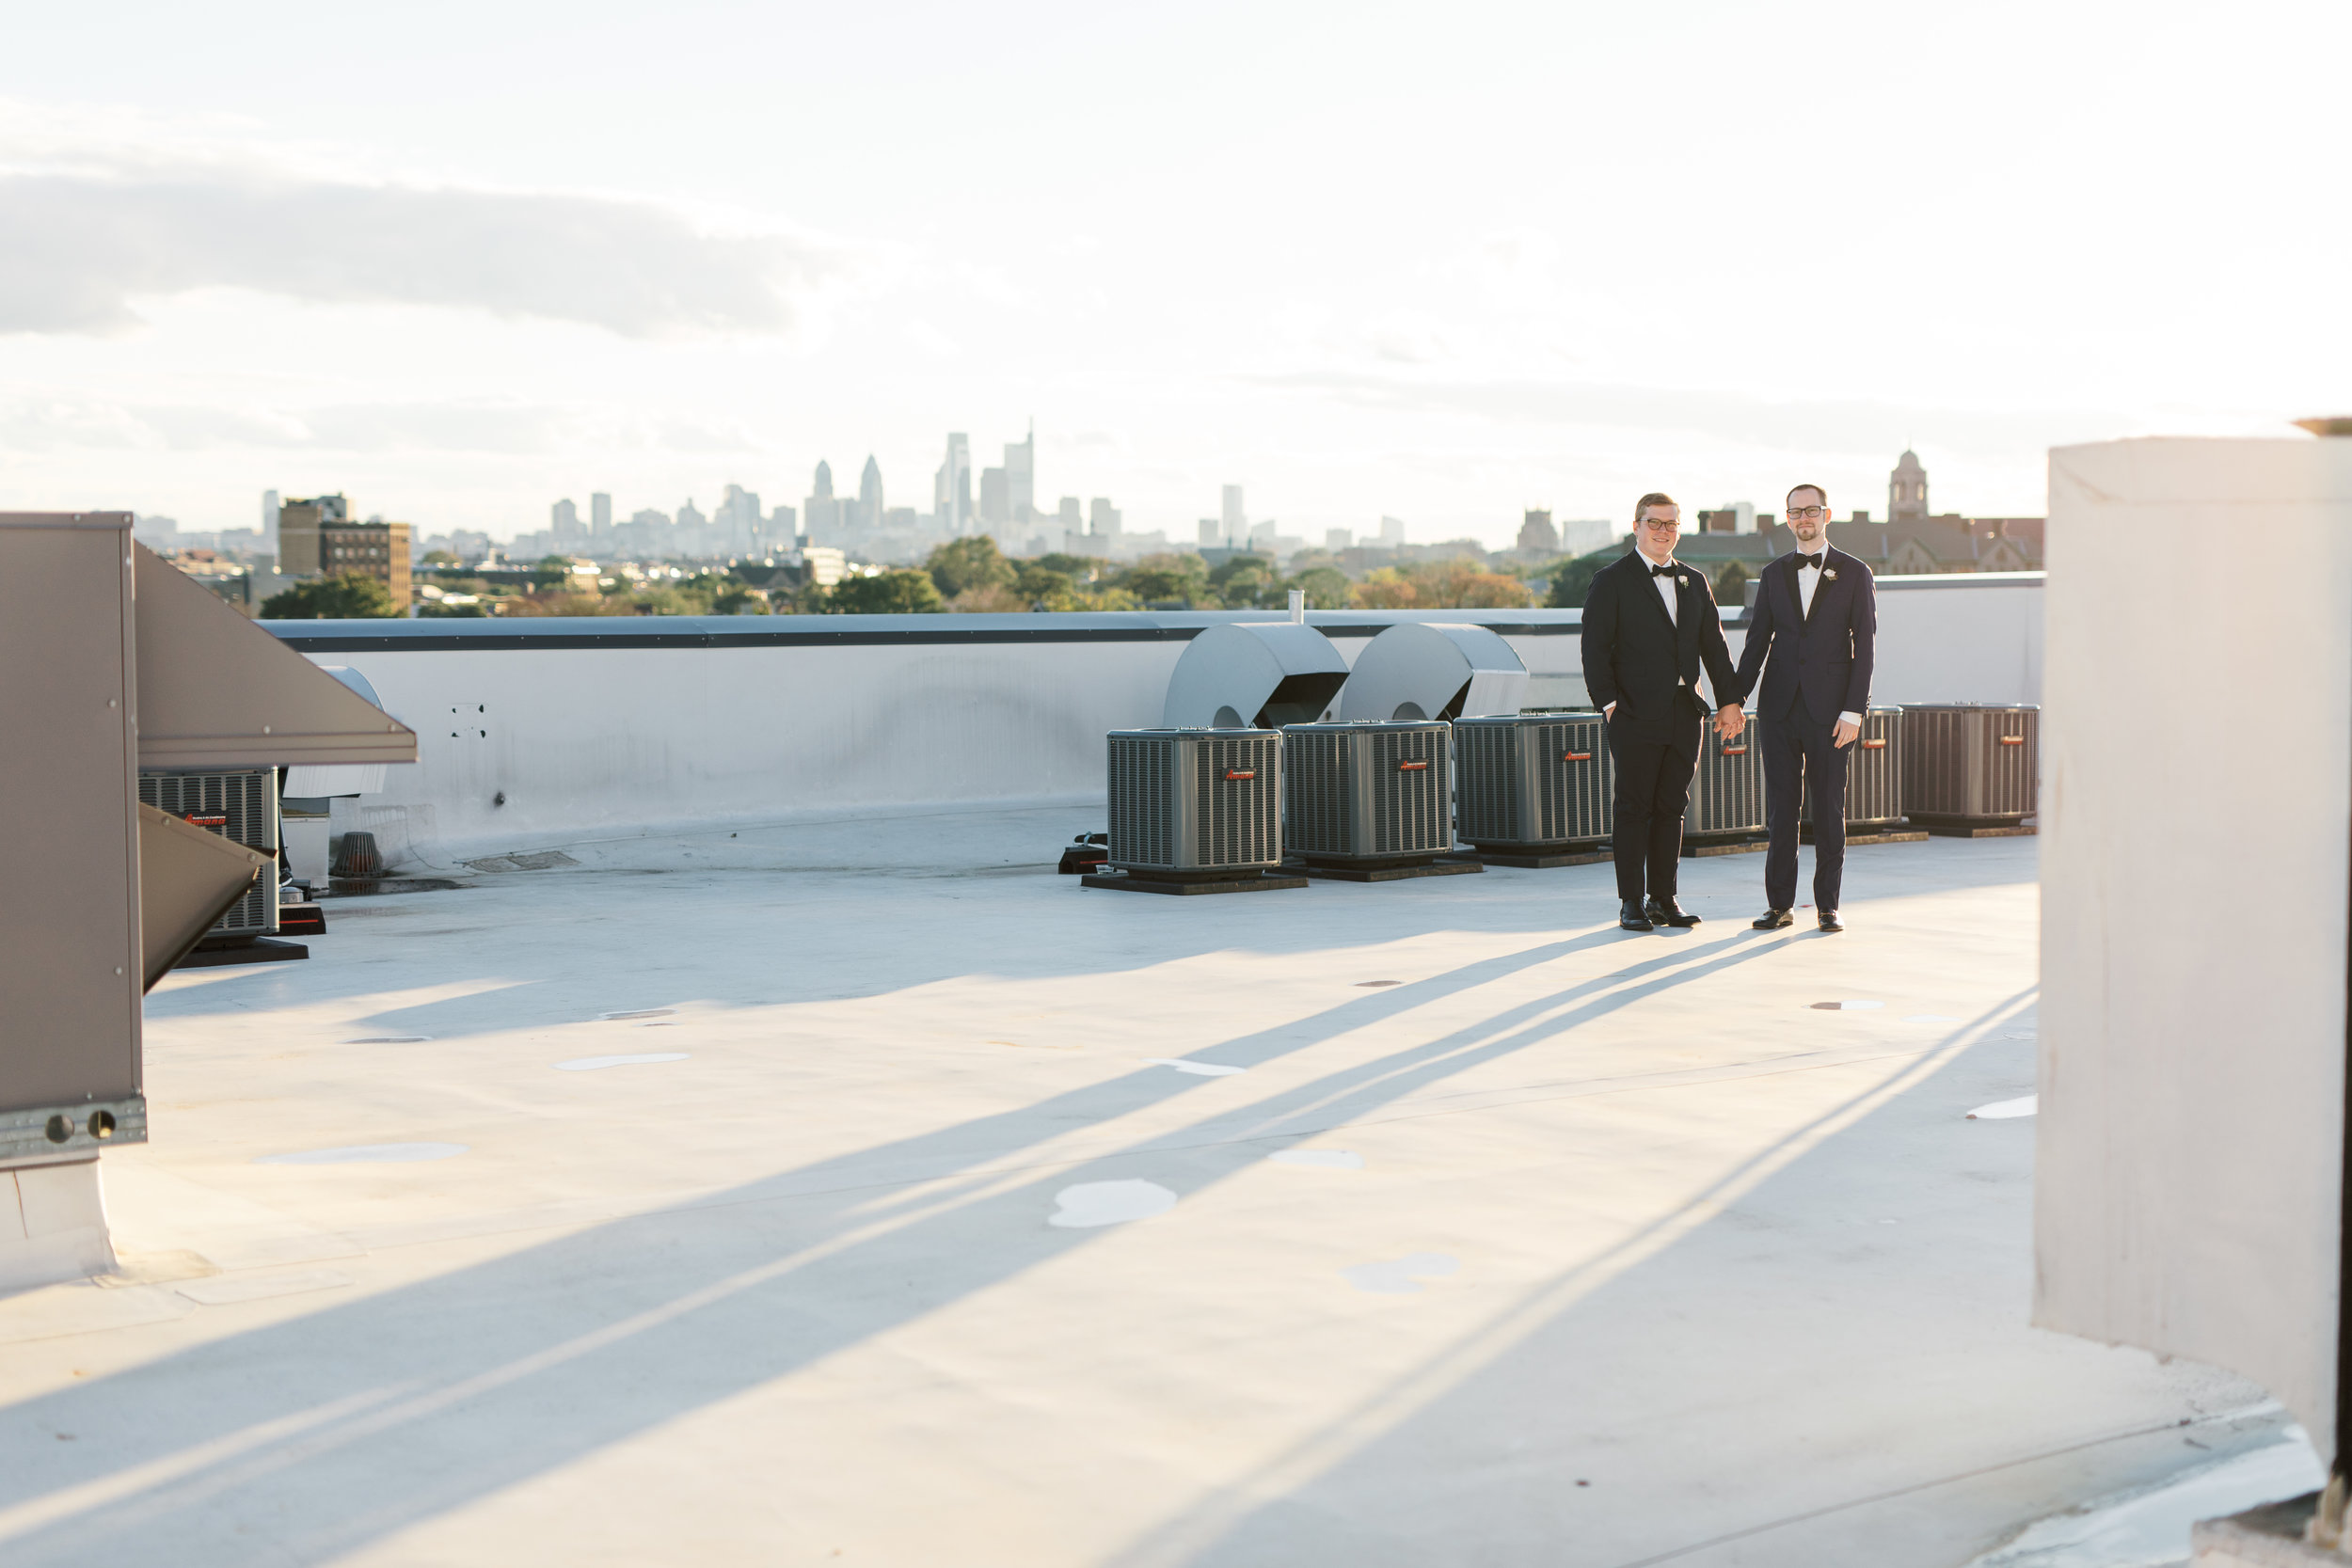 industrial and modern rooftop wedding venue, FAME, in Philadelphia with skyline view with two grooms